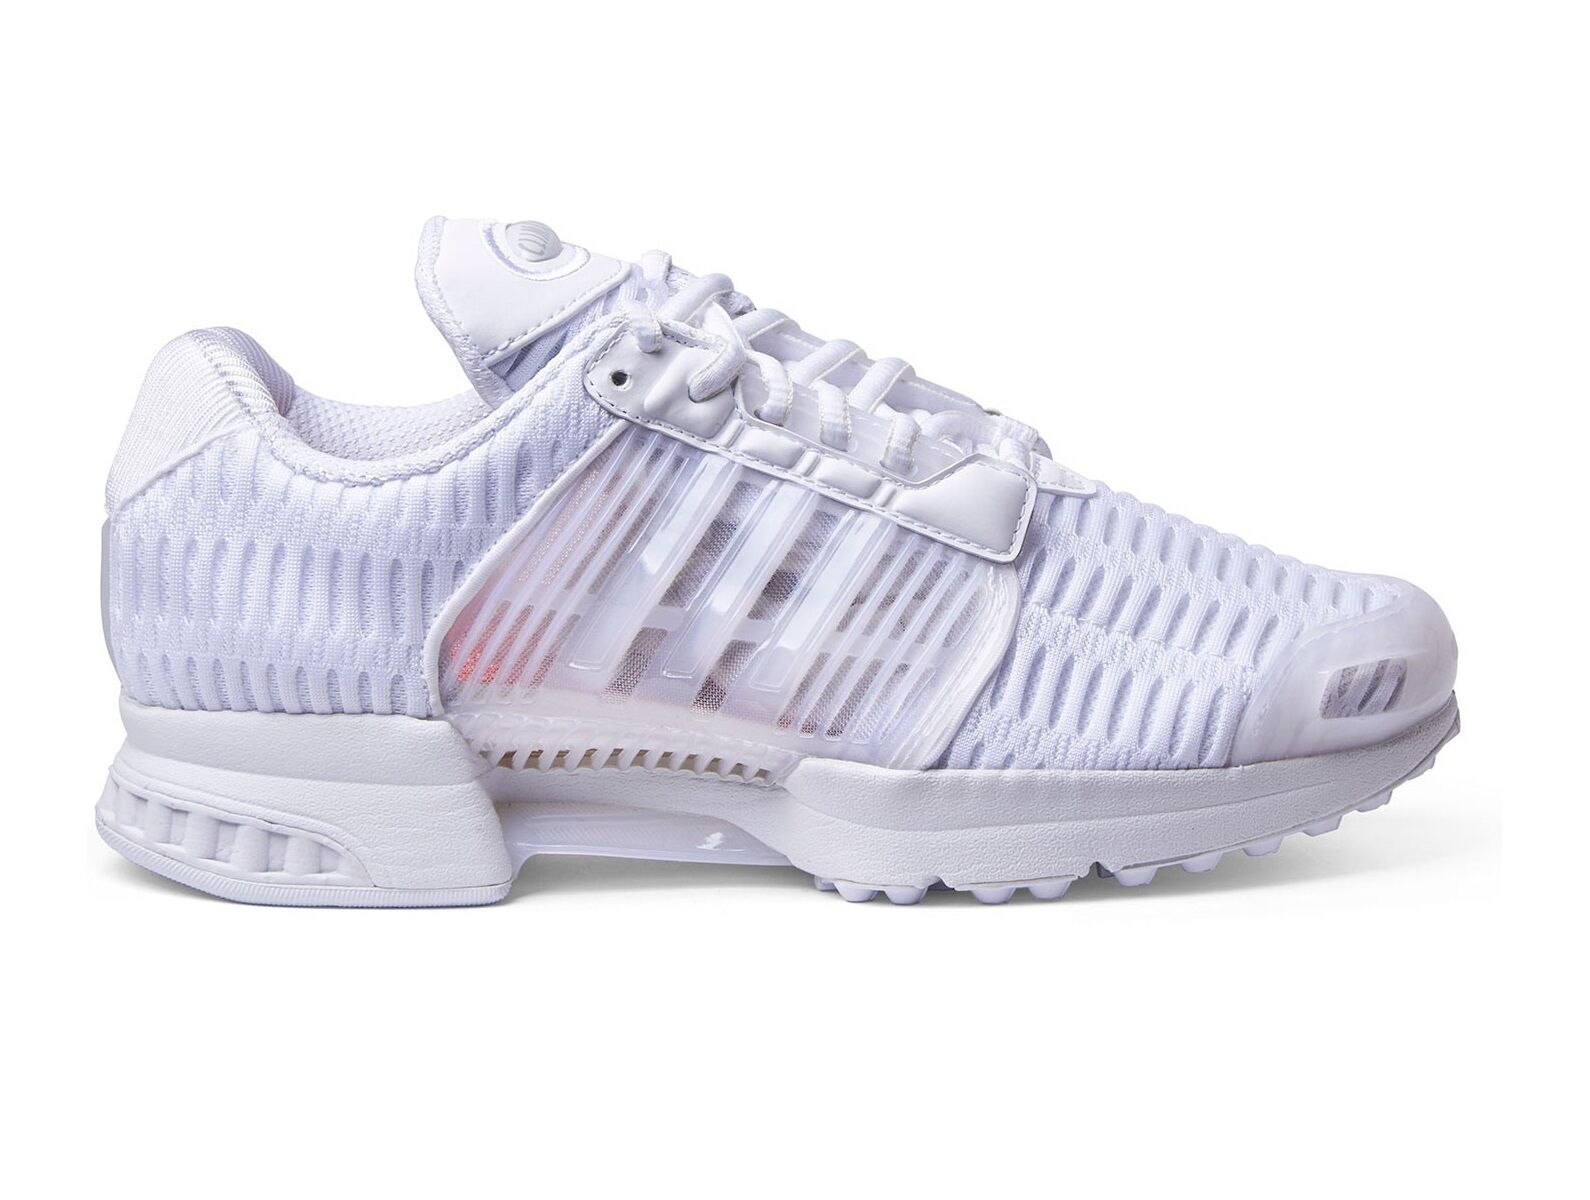 ADIDAS ORIGINALS CLIMACOOL 1 - MENS TRAINERS - S75927 - WHITE - BRAND NEW